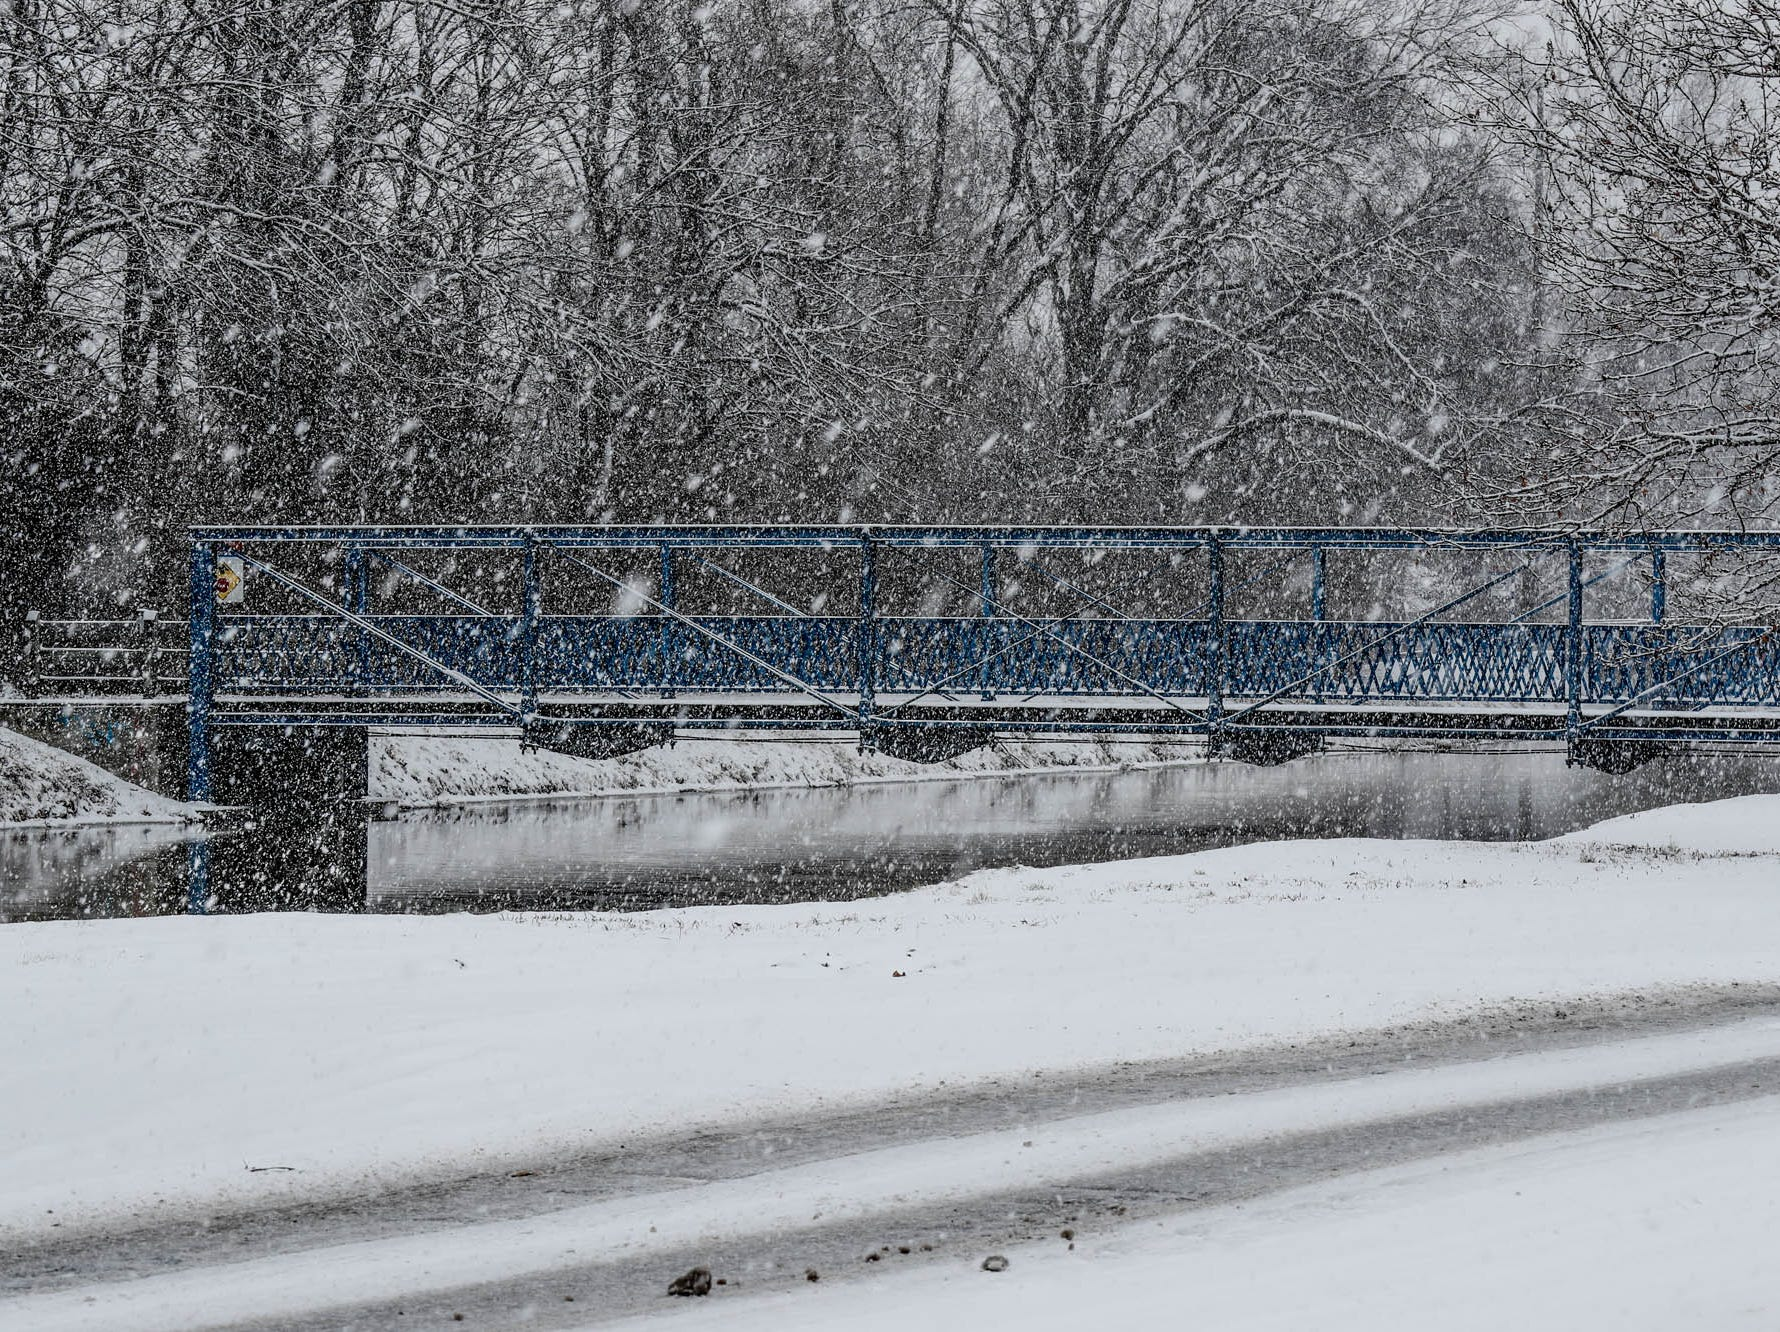 Snow falls along the canal near Broad Ripple in Indianapolis on Sunday, Feb. 10, 2019.